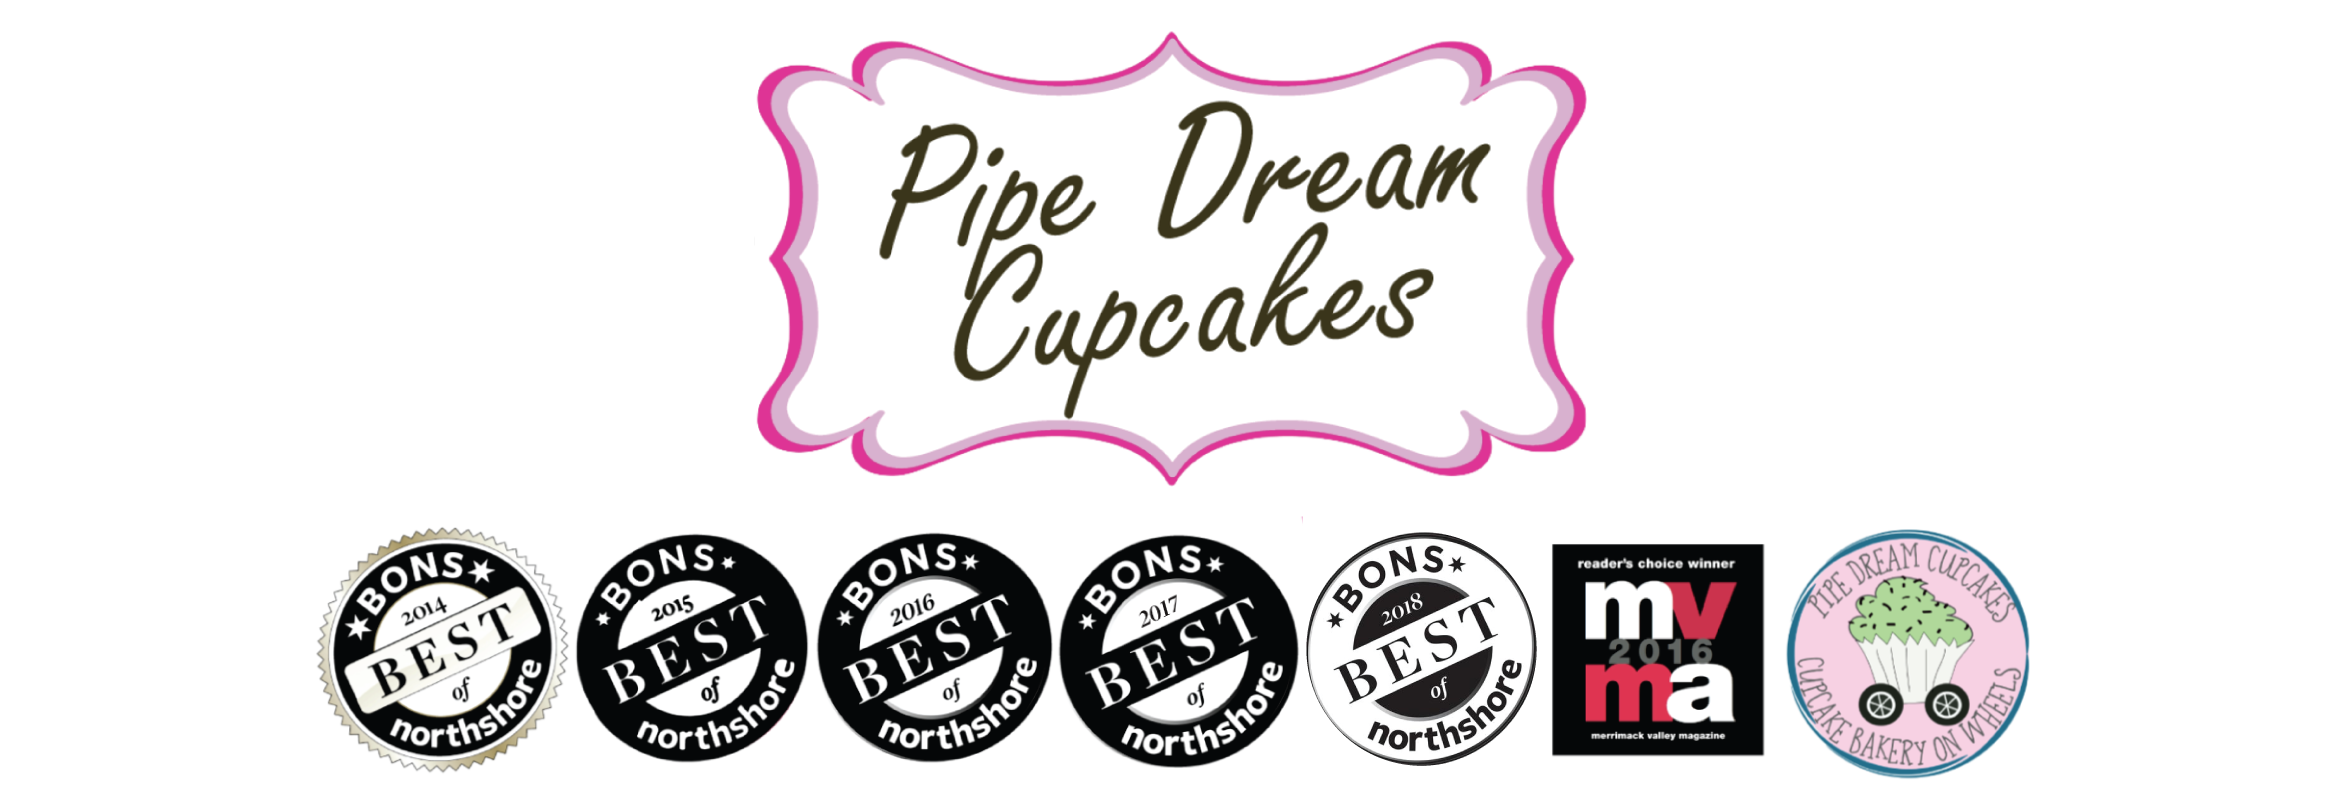 Pipe Dream Cupcakes